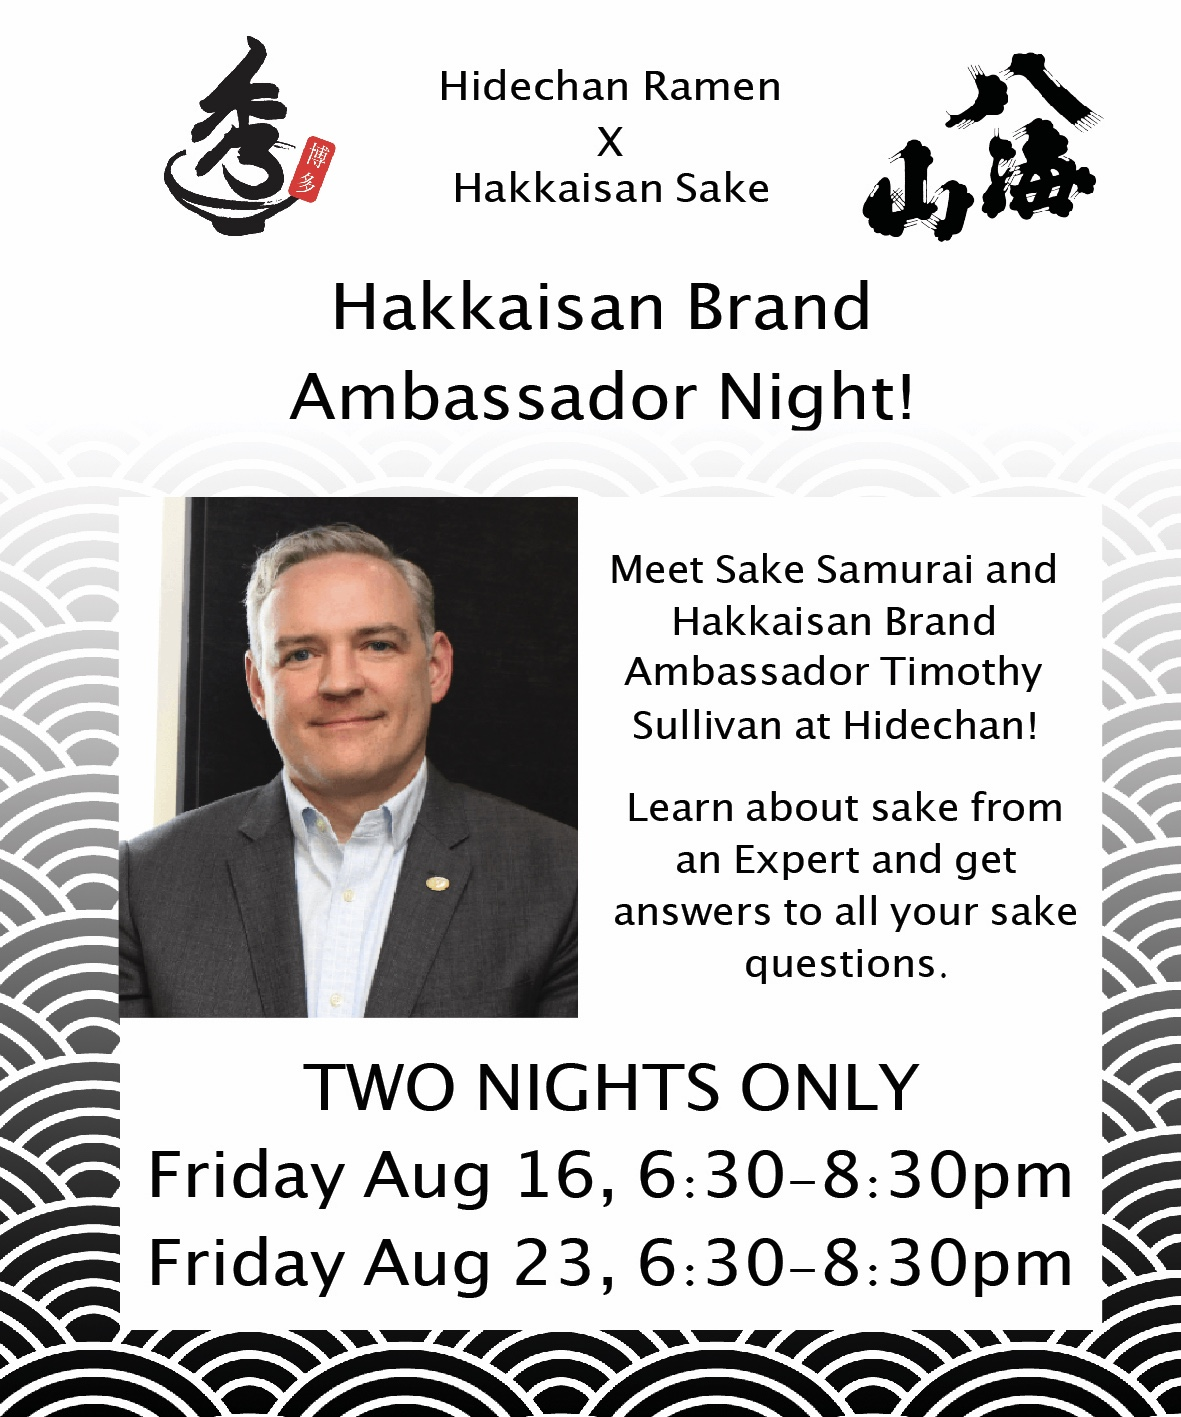 Try Two Sakes for limited time - Tasting Set $10 (75ml each kind)Hakkaisan Tokubetsu Honjozo (By The Glass 150ml $10)Dry, clean and classic style of sake. Serving chilled with bring out the crisp finish.Echigo De Soro Nama Genshu (By The Glass 150ml $12)Rich, juicy and UNPASTEURIZED. This seasonal sake is just like drinking sale from the press.*MIDTOWN EAST LOCATION ONLY